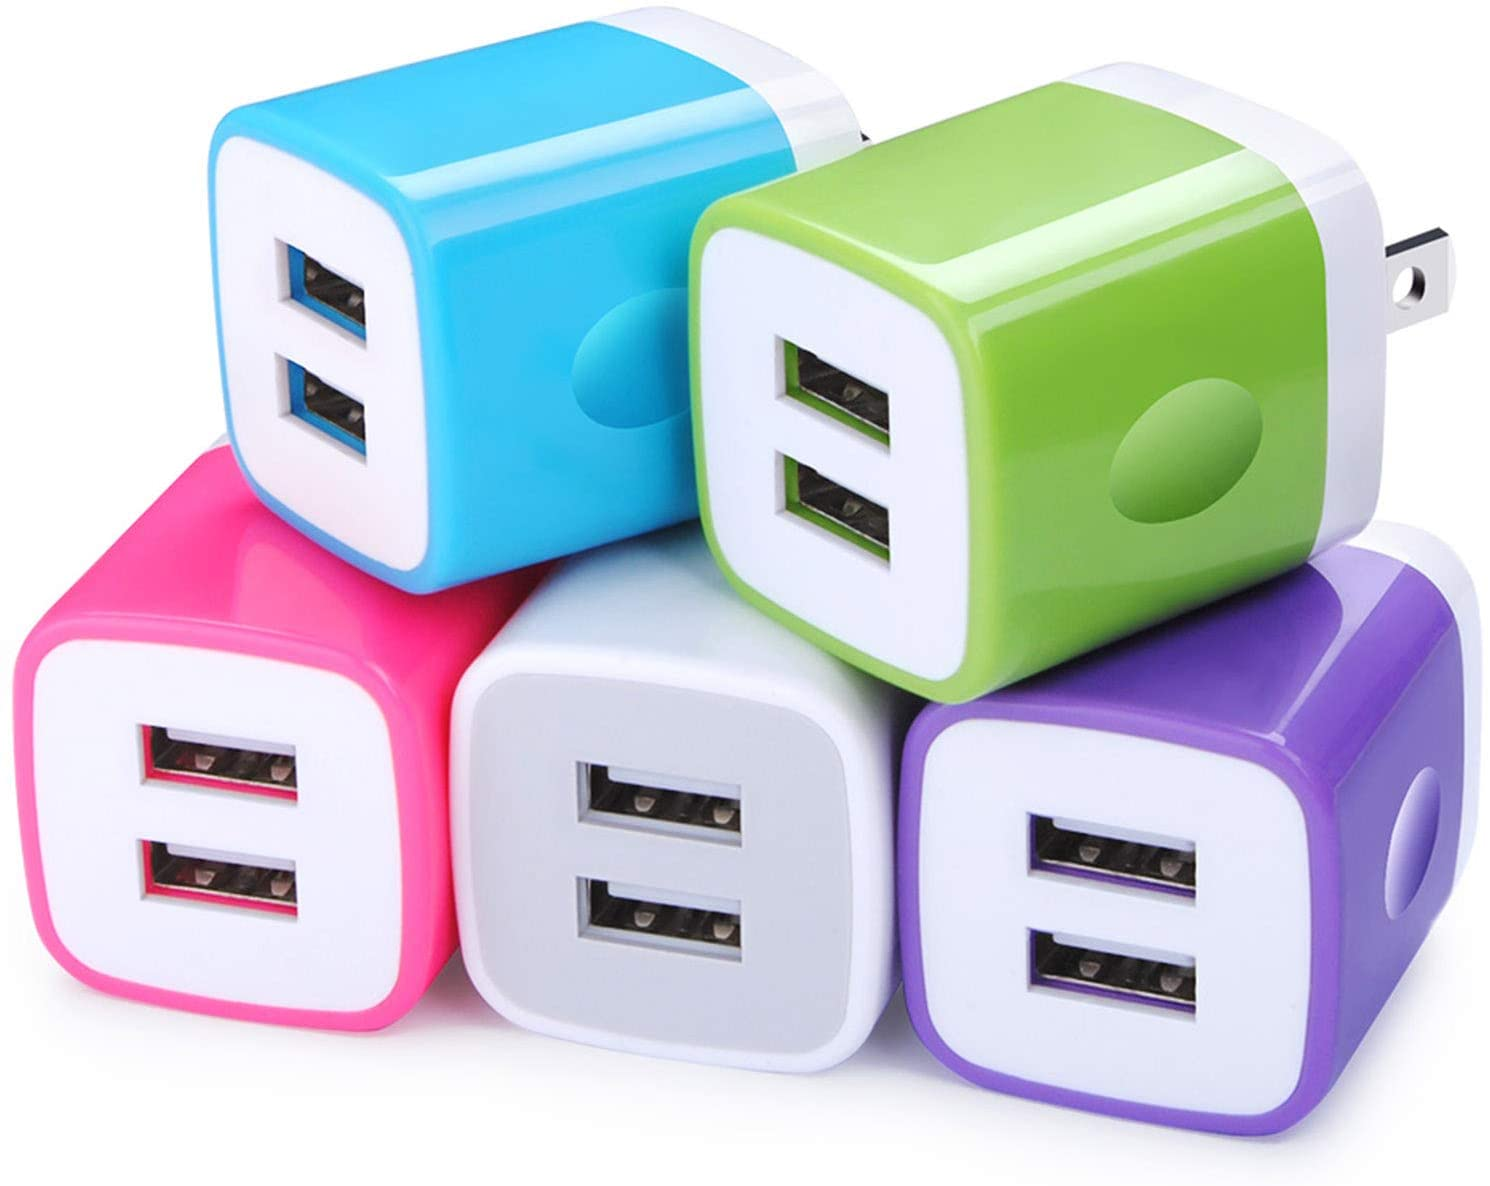 USB Wall Very popular Charger FiveBox 5Pack Max 41% OFF Port 2.1A Dual Adapter